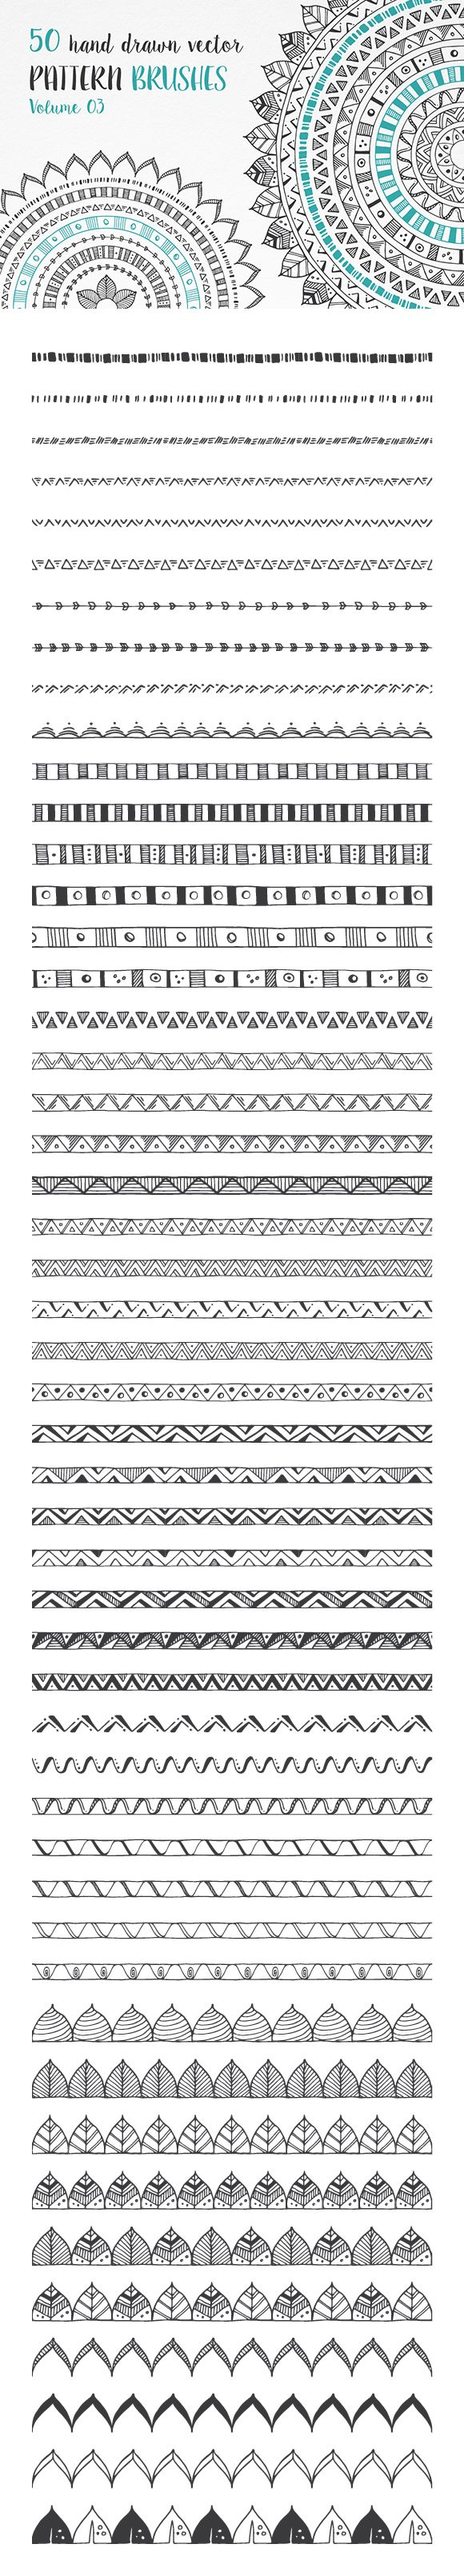 Hand Drawn Pattern Brushes Vol. 03 by DESIGN BY nube #patterns #brushes #vector #boho #tribal #geometric #handdrawn #frames #borders #designelements